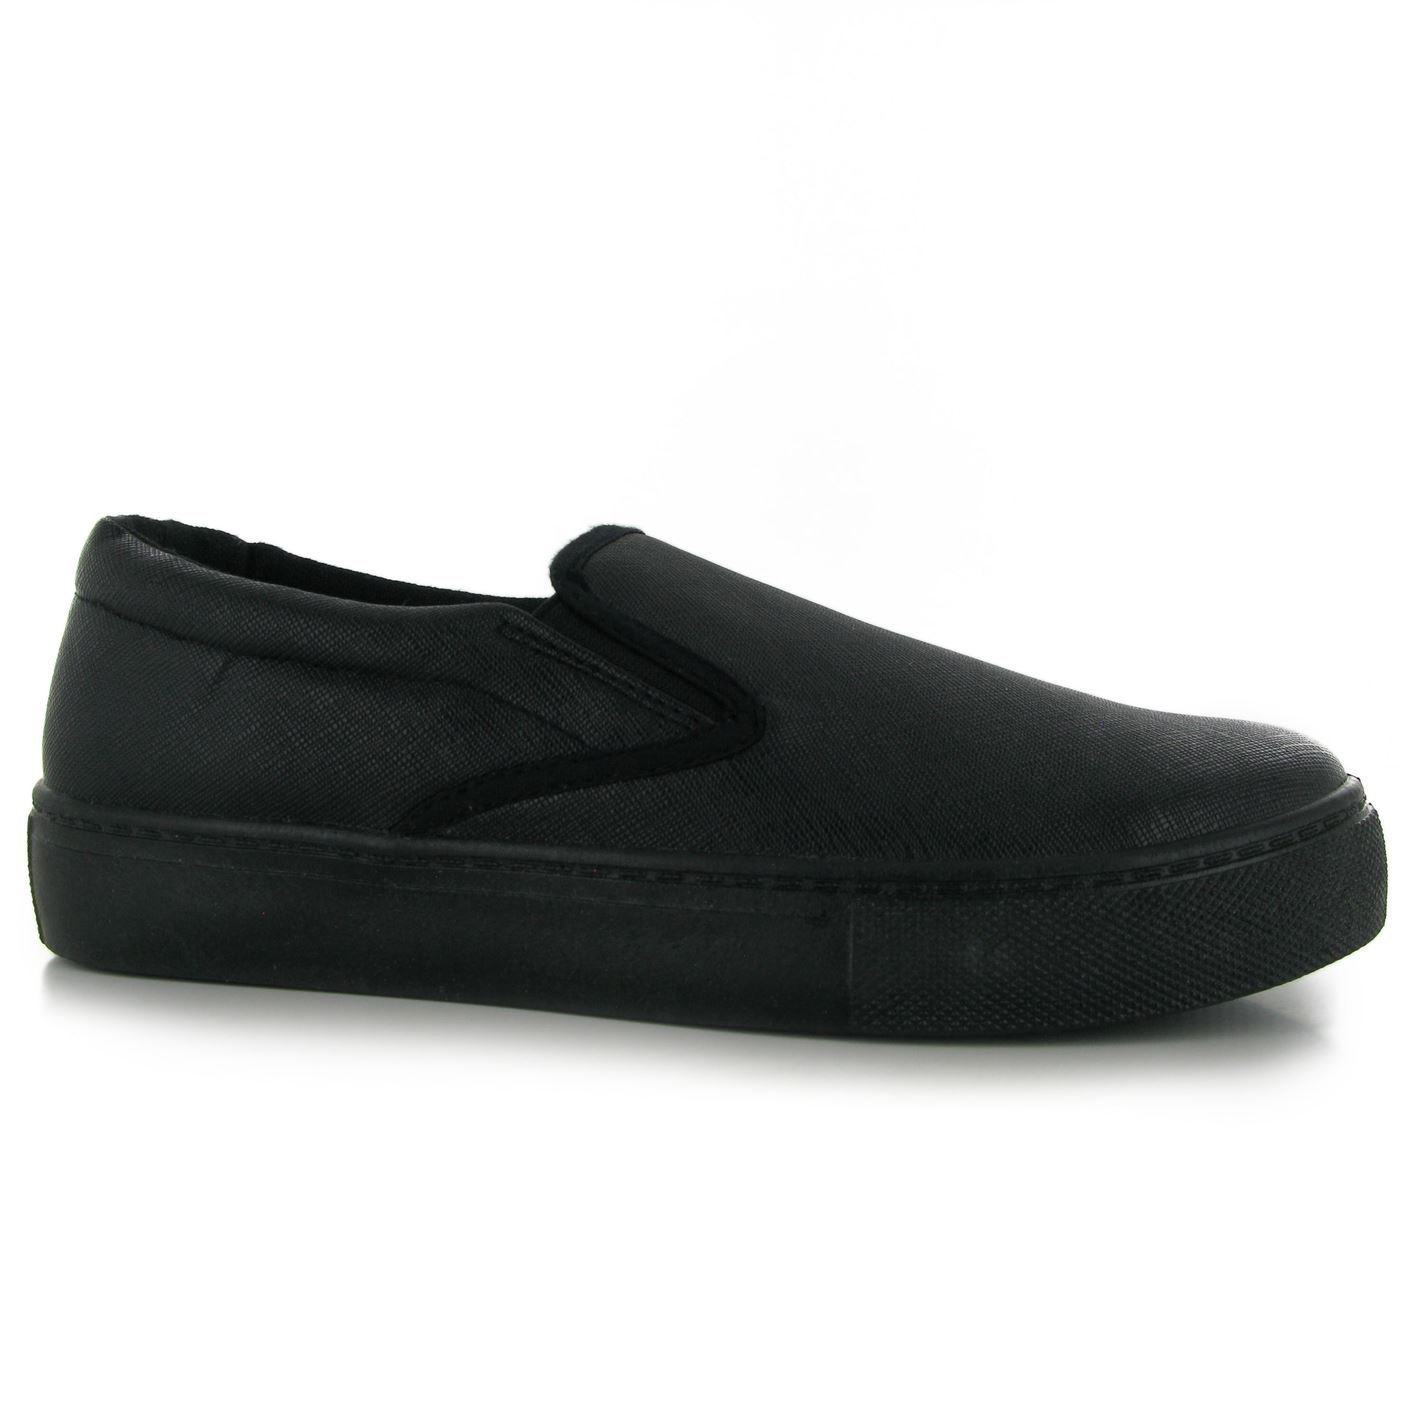 488e8691a Fabric Hustle Slip On Trainers Womens Black/Black (UK4) (EU37):  Amazon.co.uk: Sports & Outdoors